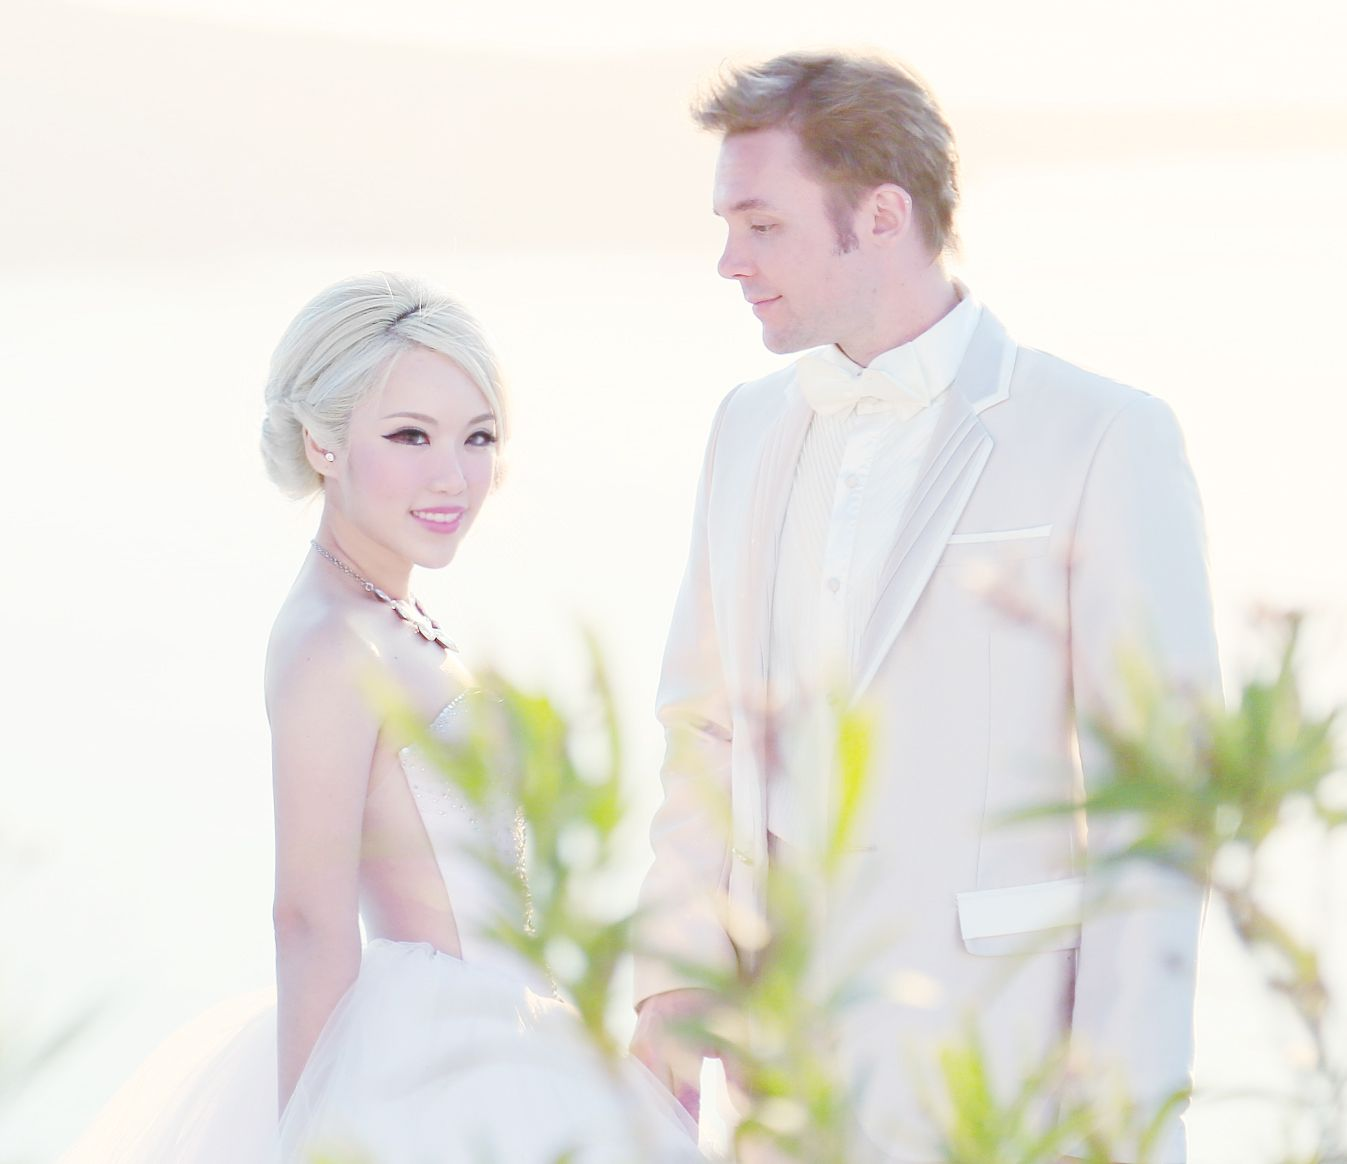 Xiaxue S Amazing Wedding Shoot With Sunrise Greece In Santorini Xiaxue Blogspot Com Wedding Photos Poses Wedding Photoshoot Greece Wedding